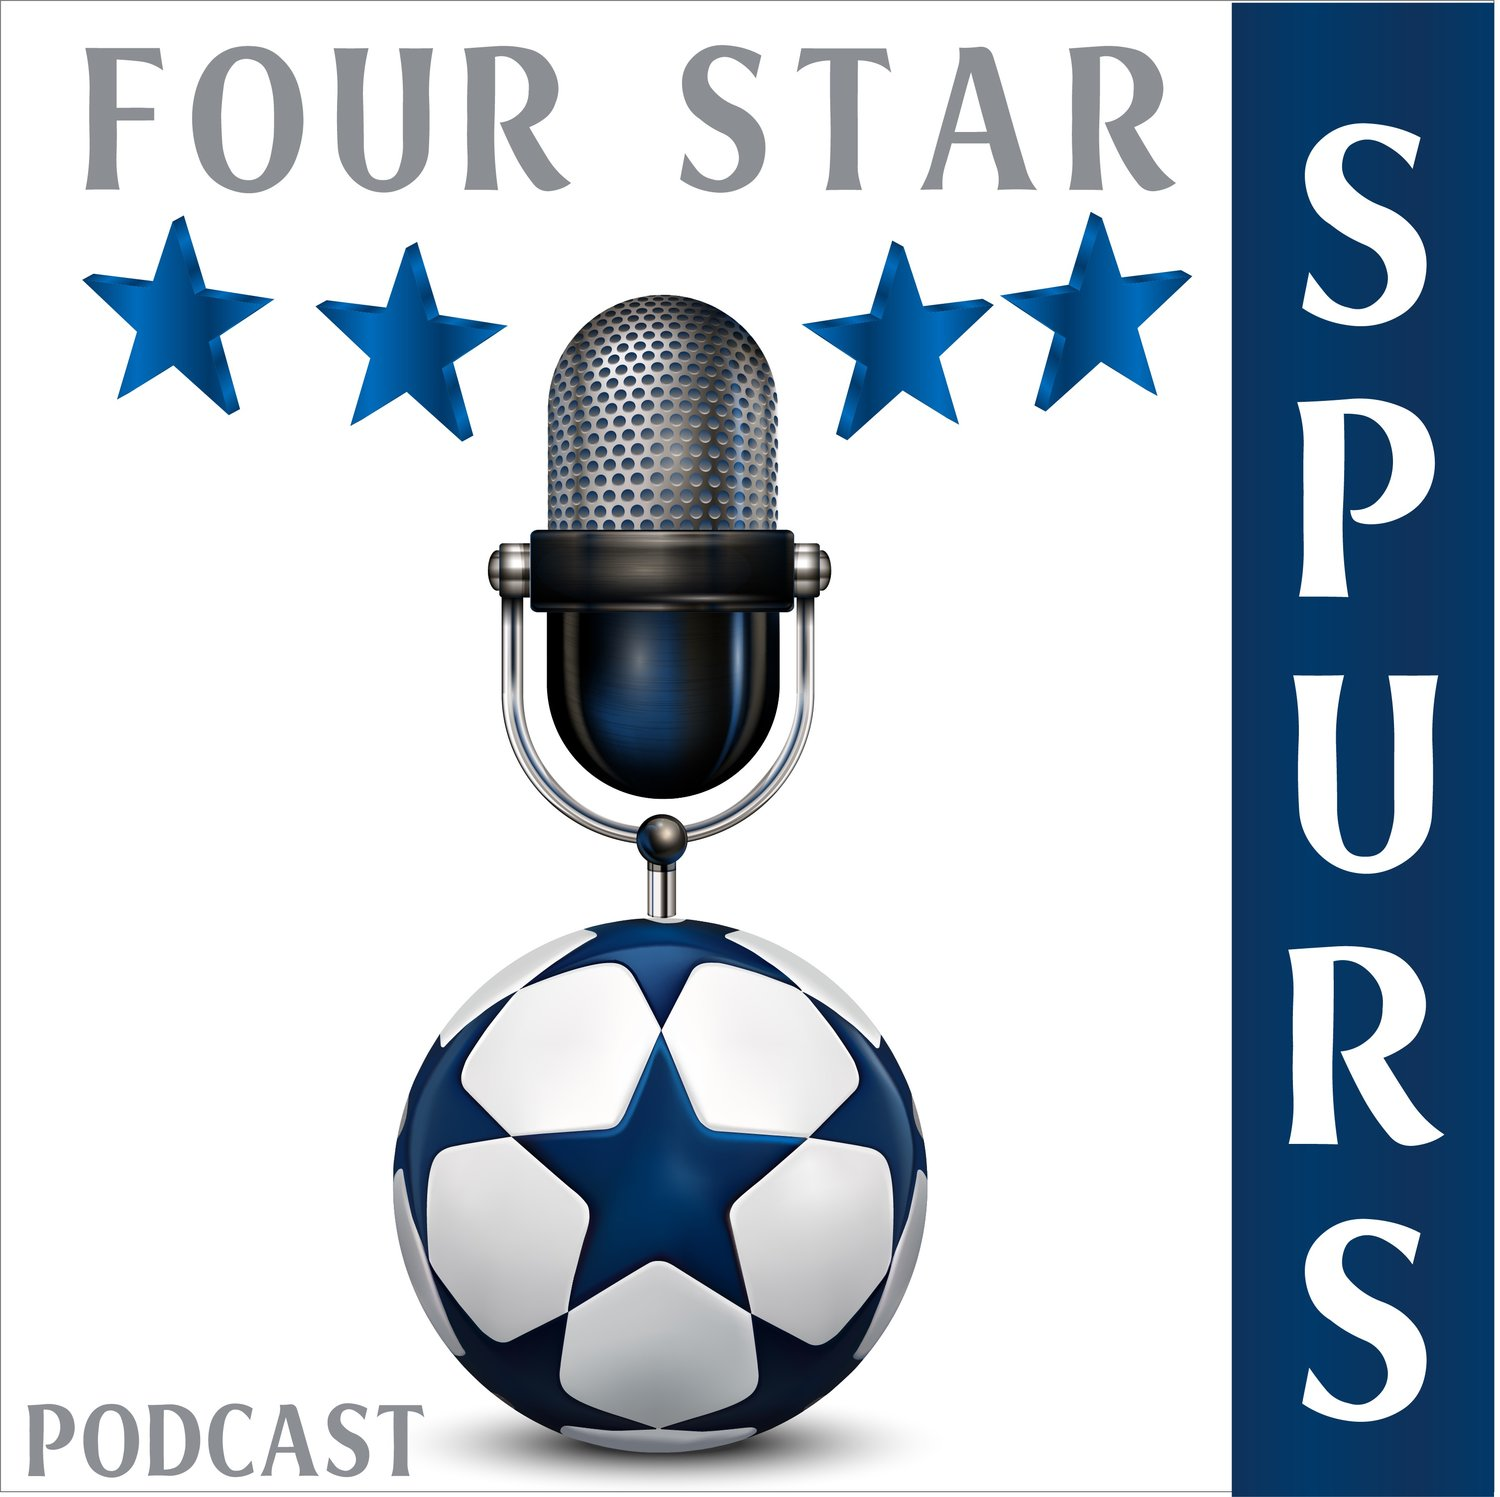 Four               Star           Spurs